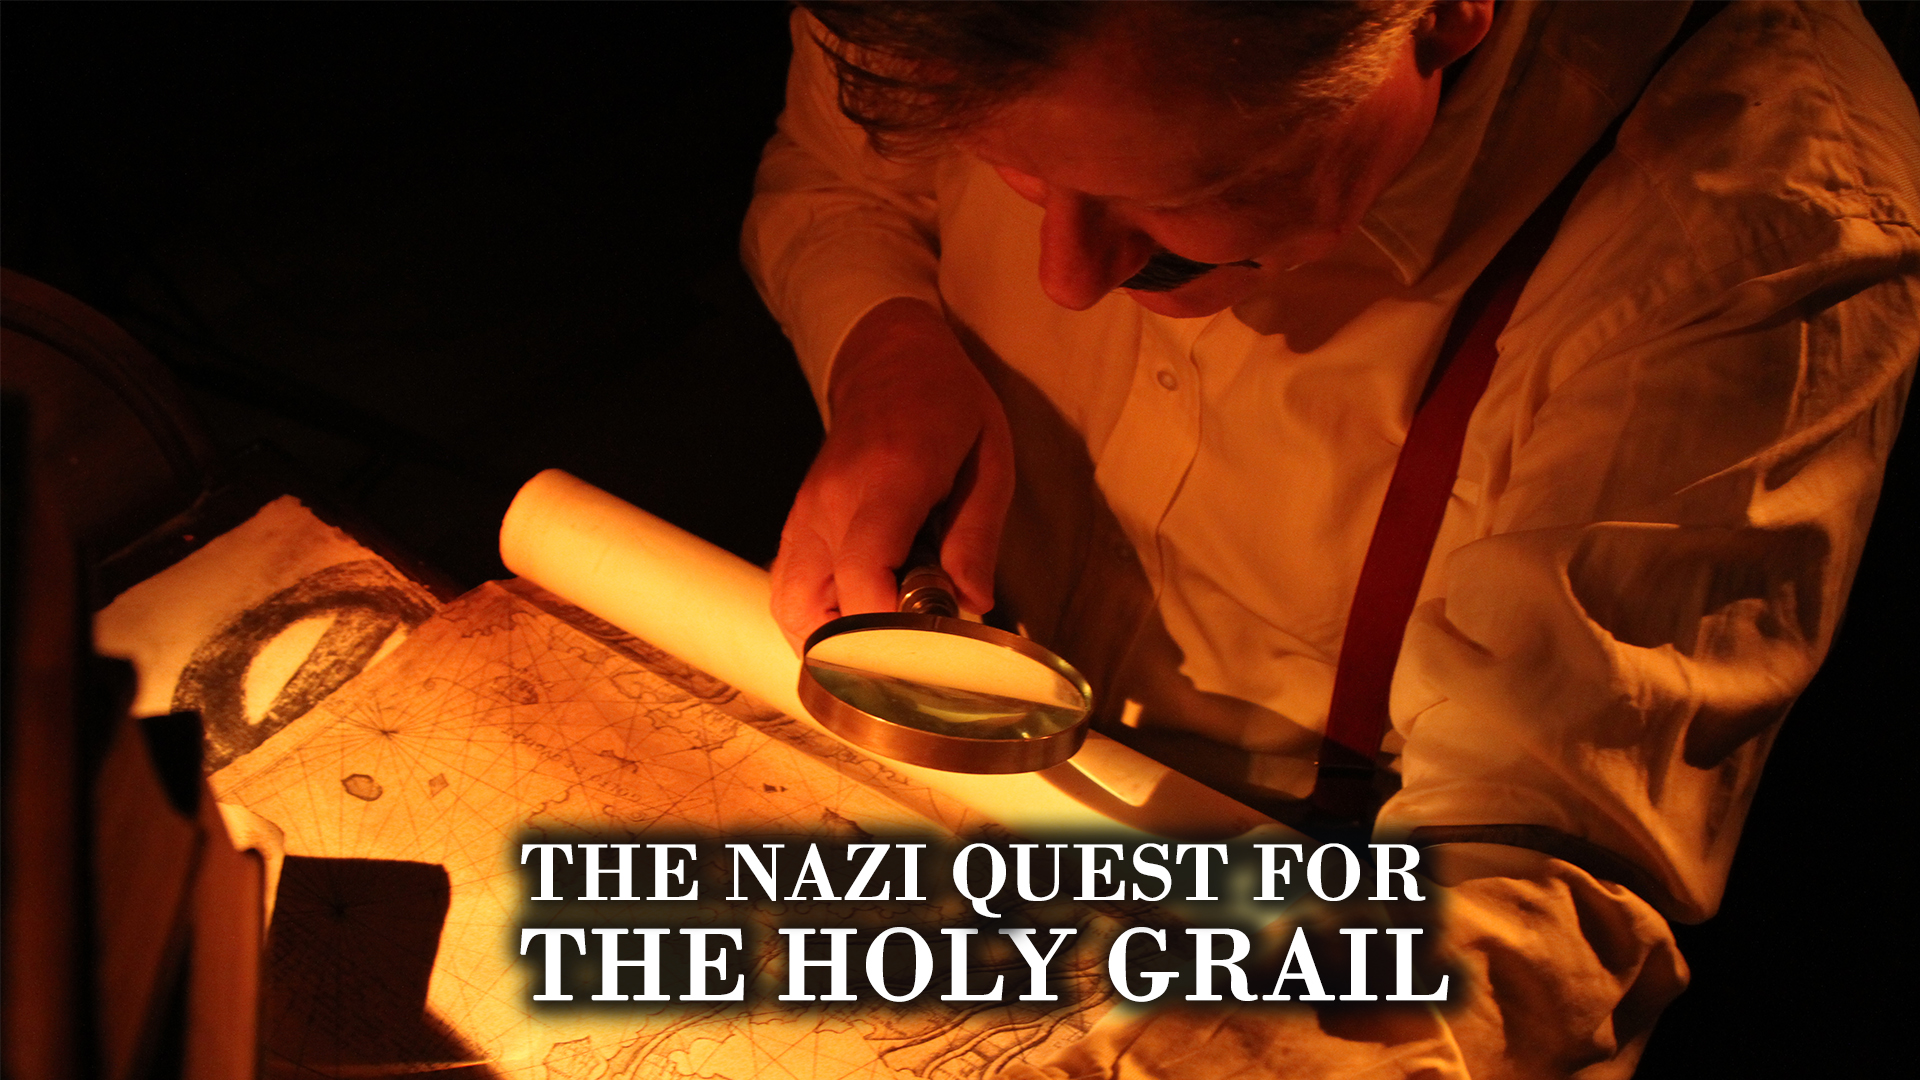 Nazi Quest for the Holy Grail